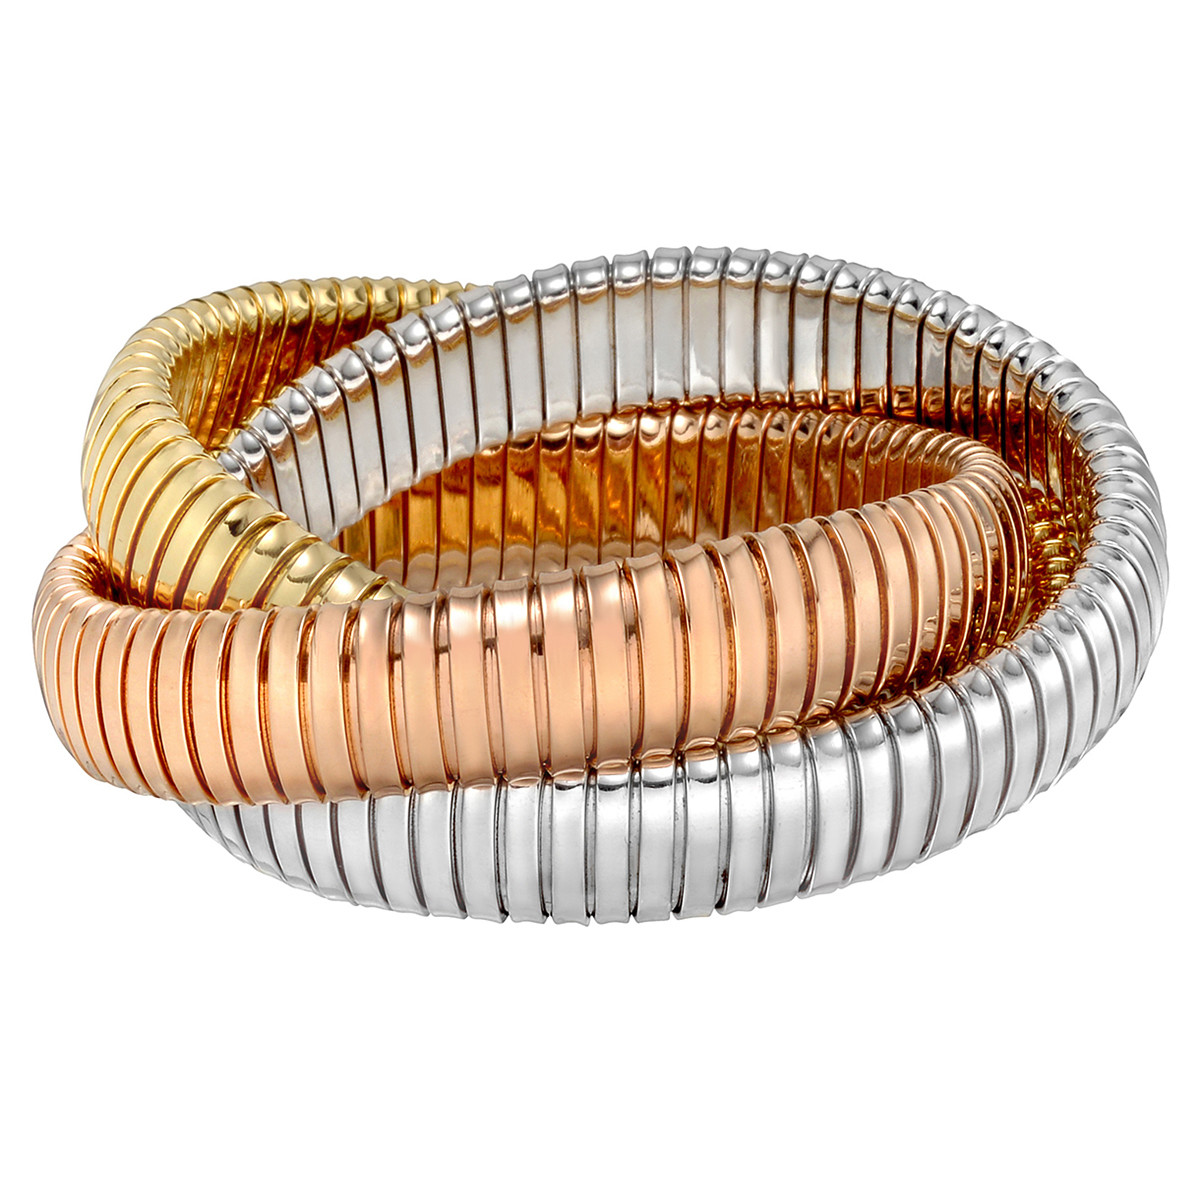 18k Tri-Colored Gold Tubogas Rolling Bangle Bracelet